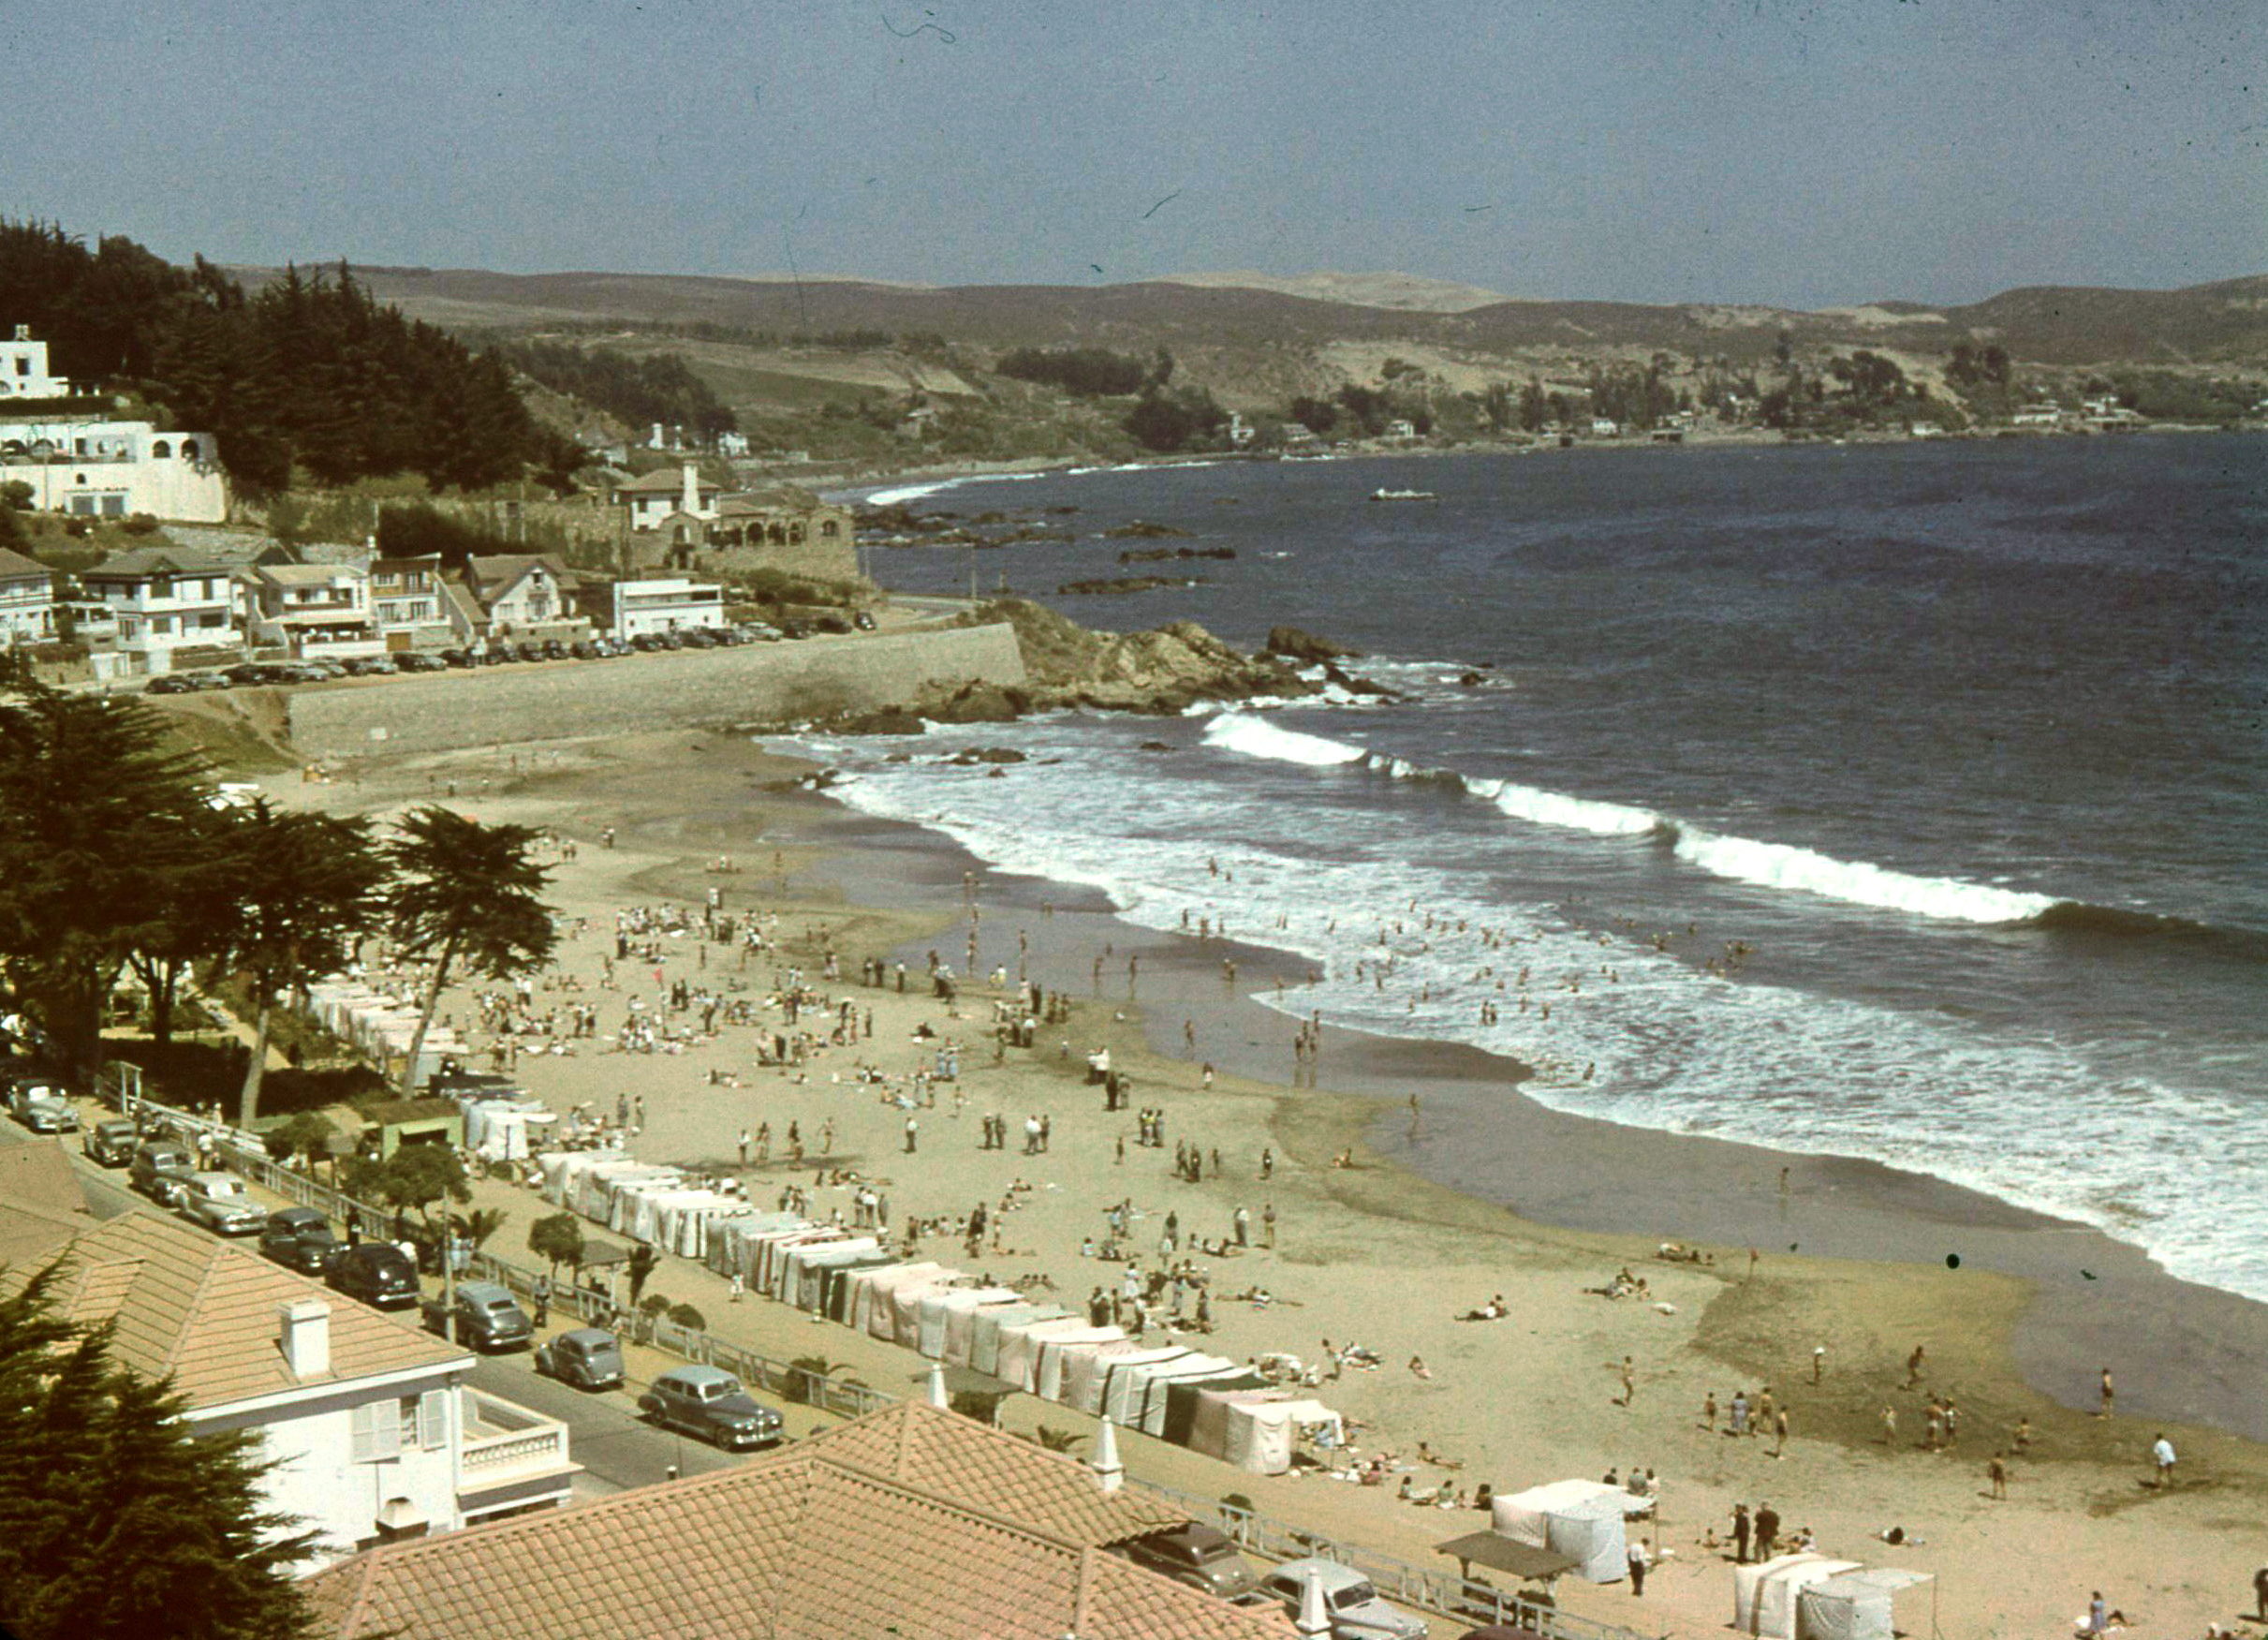 Enterreno - Fotos históricas de chile - fotos antiguas de Chile - Playa Amarilla Concón en 1955